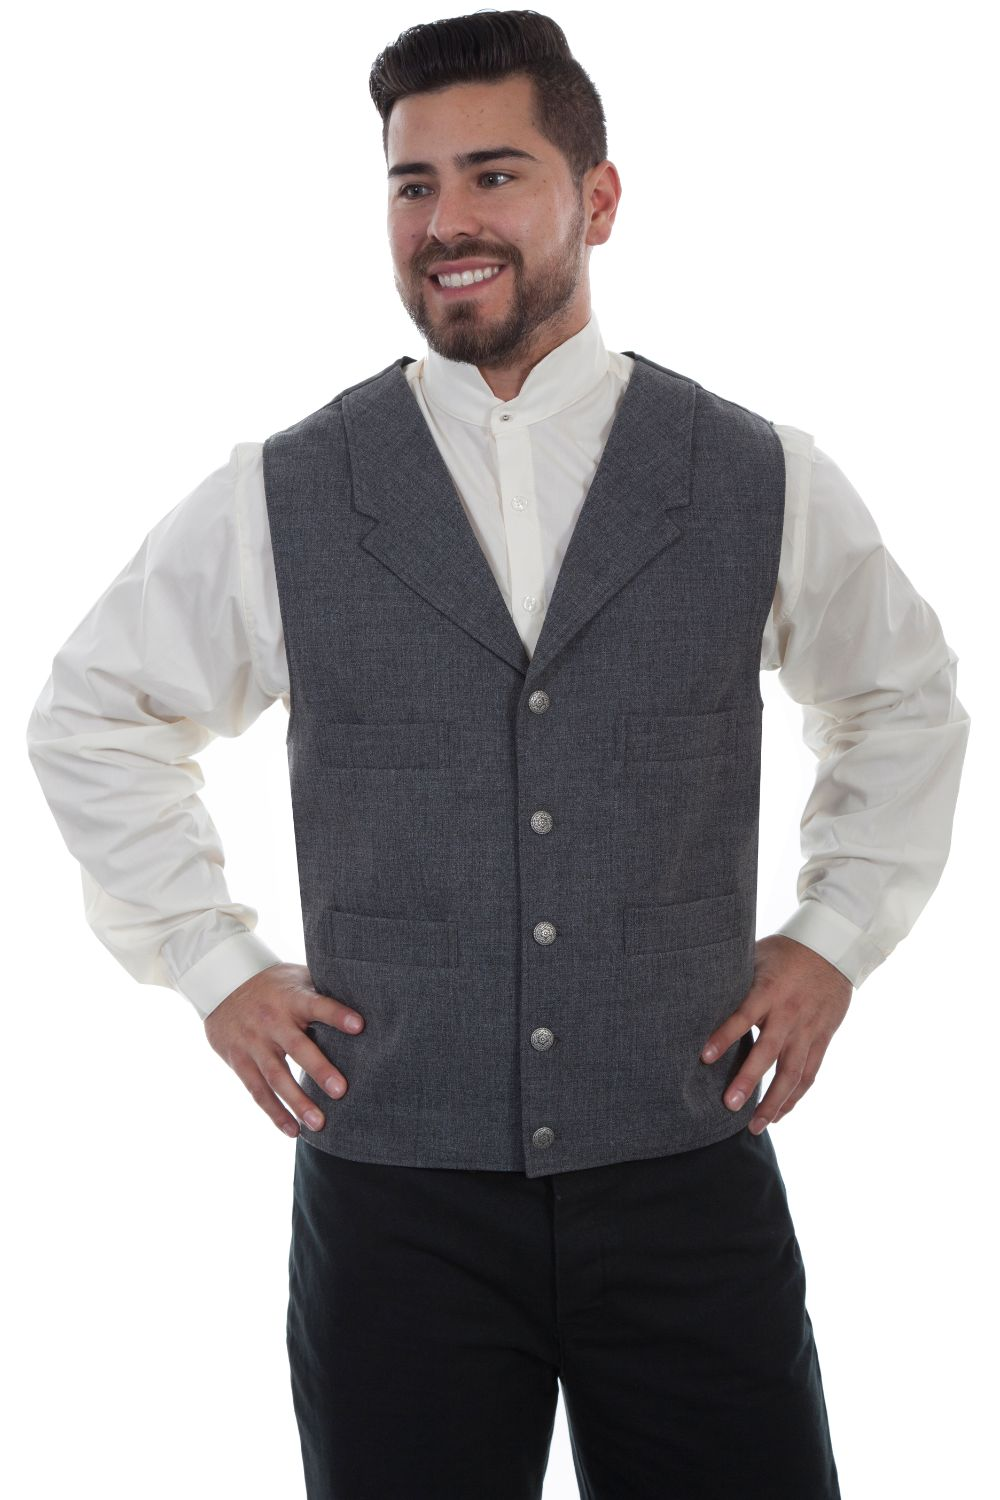 4 Pocket Polyester Vest - 541454 - Heather Grey. (ships in 1-2 days). #F0_541454_HGR